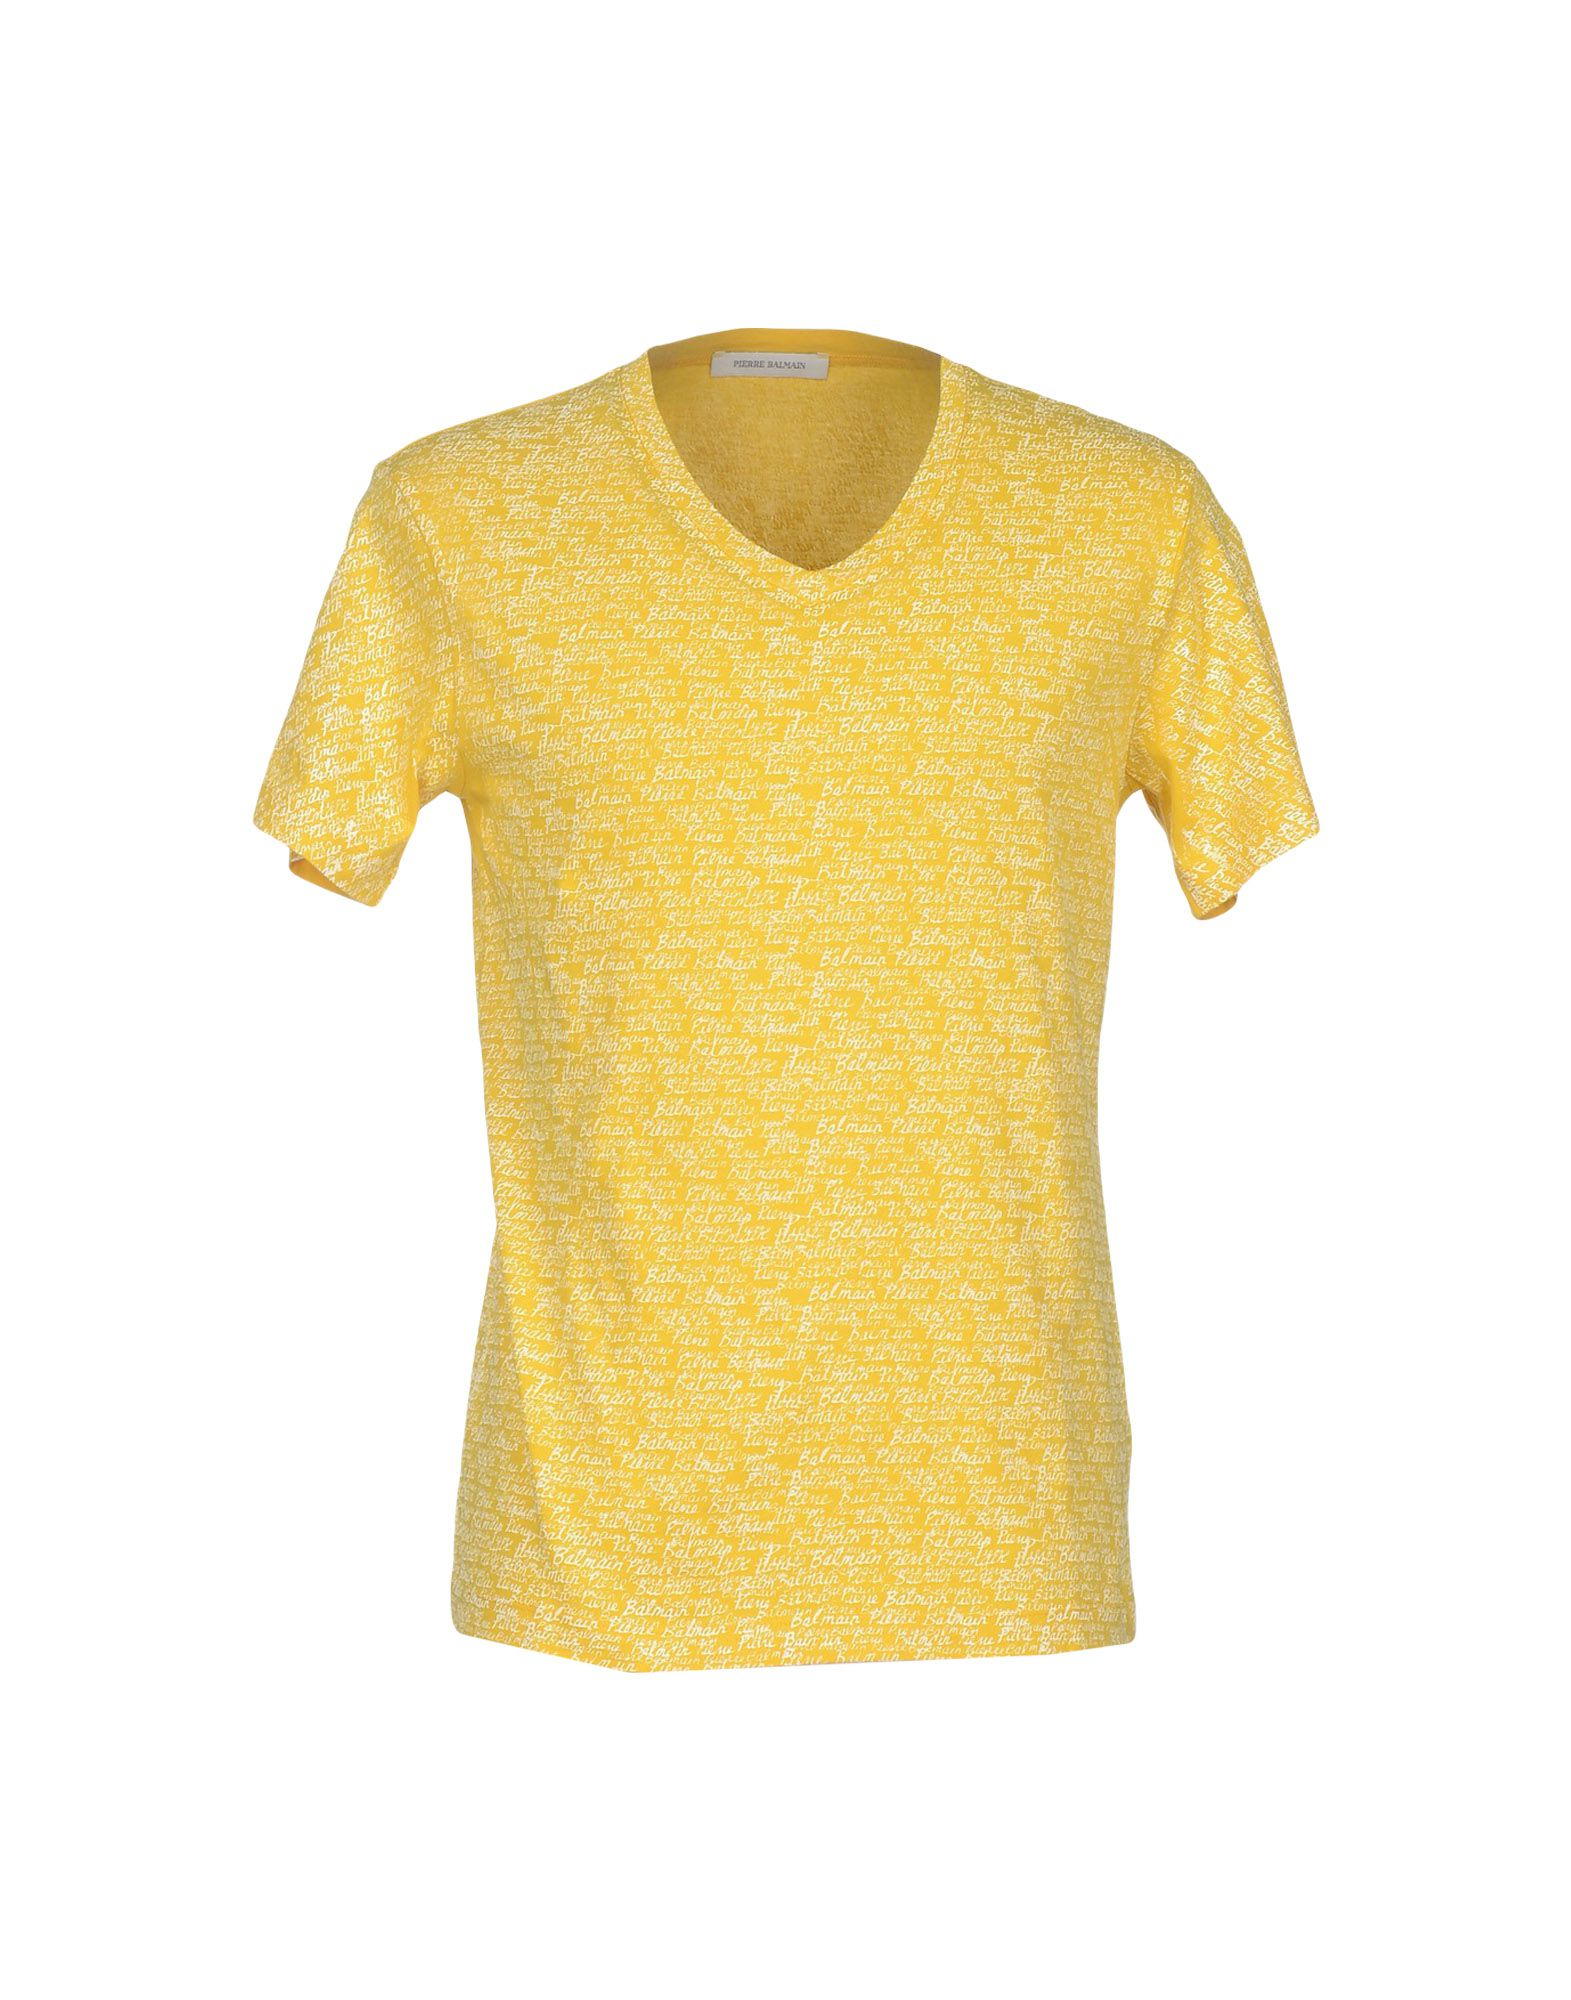 balmain t shirt in yellow for men lyst. Black Bedroom Furniture Sets. Home Design Ideas